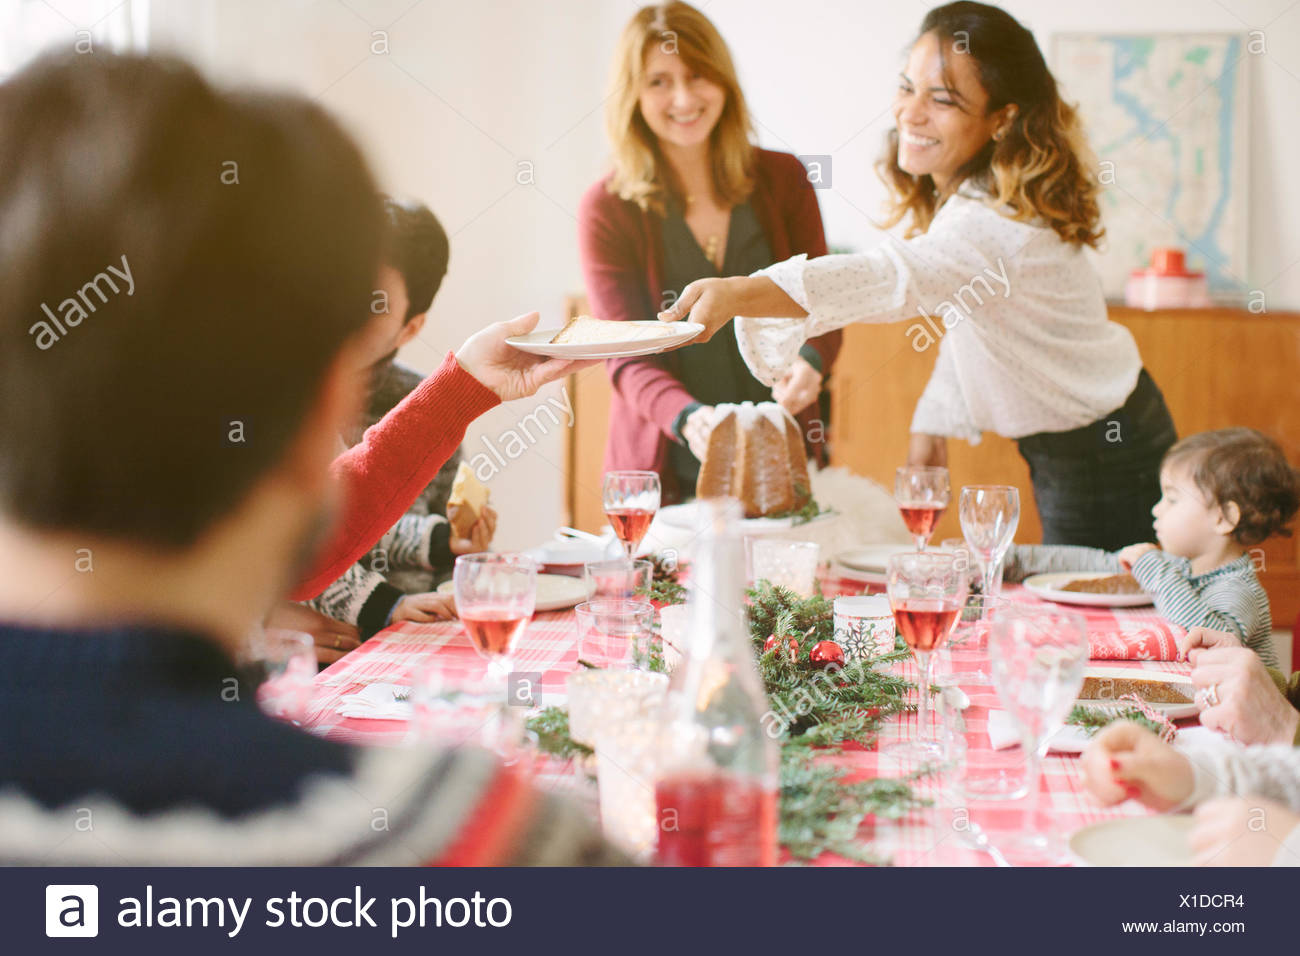 Family Christmas party - Stock Image